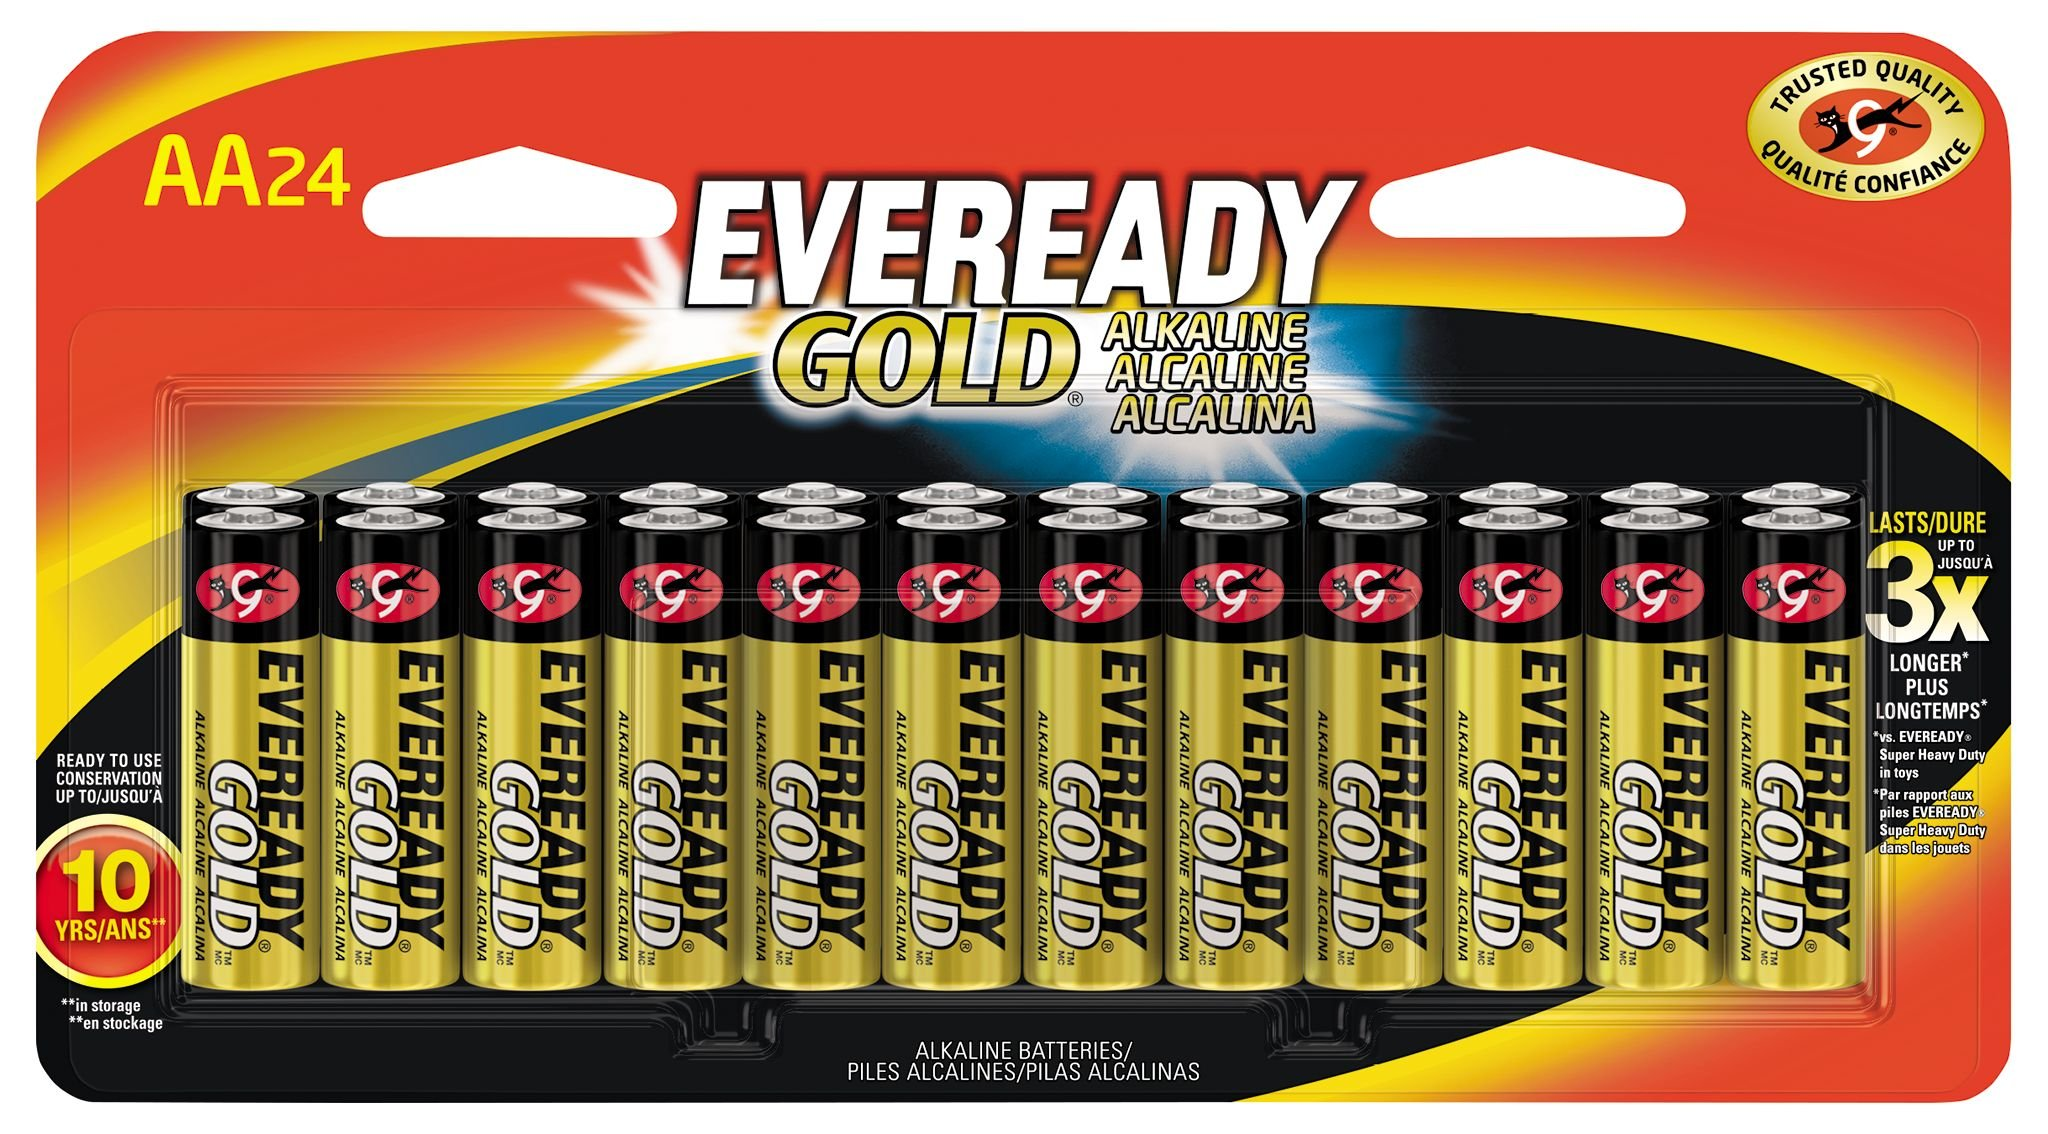 Eveready Gold Alkaline Batteries Aaa In Family Pack 16 Arta Cutaway Diagram Show A Typical Cell Or Battery With Energizer Aa 24 Count